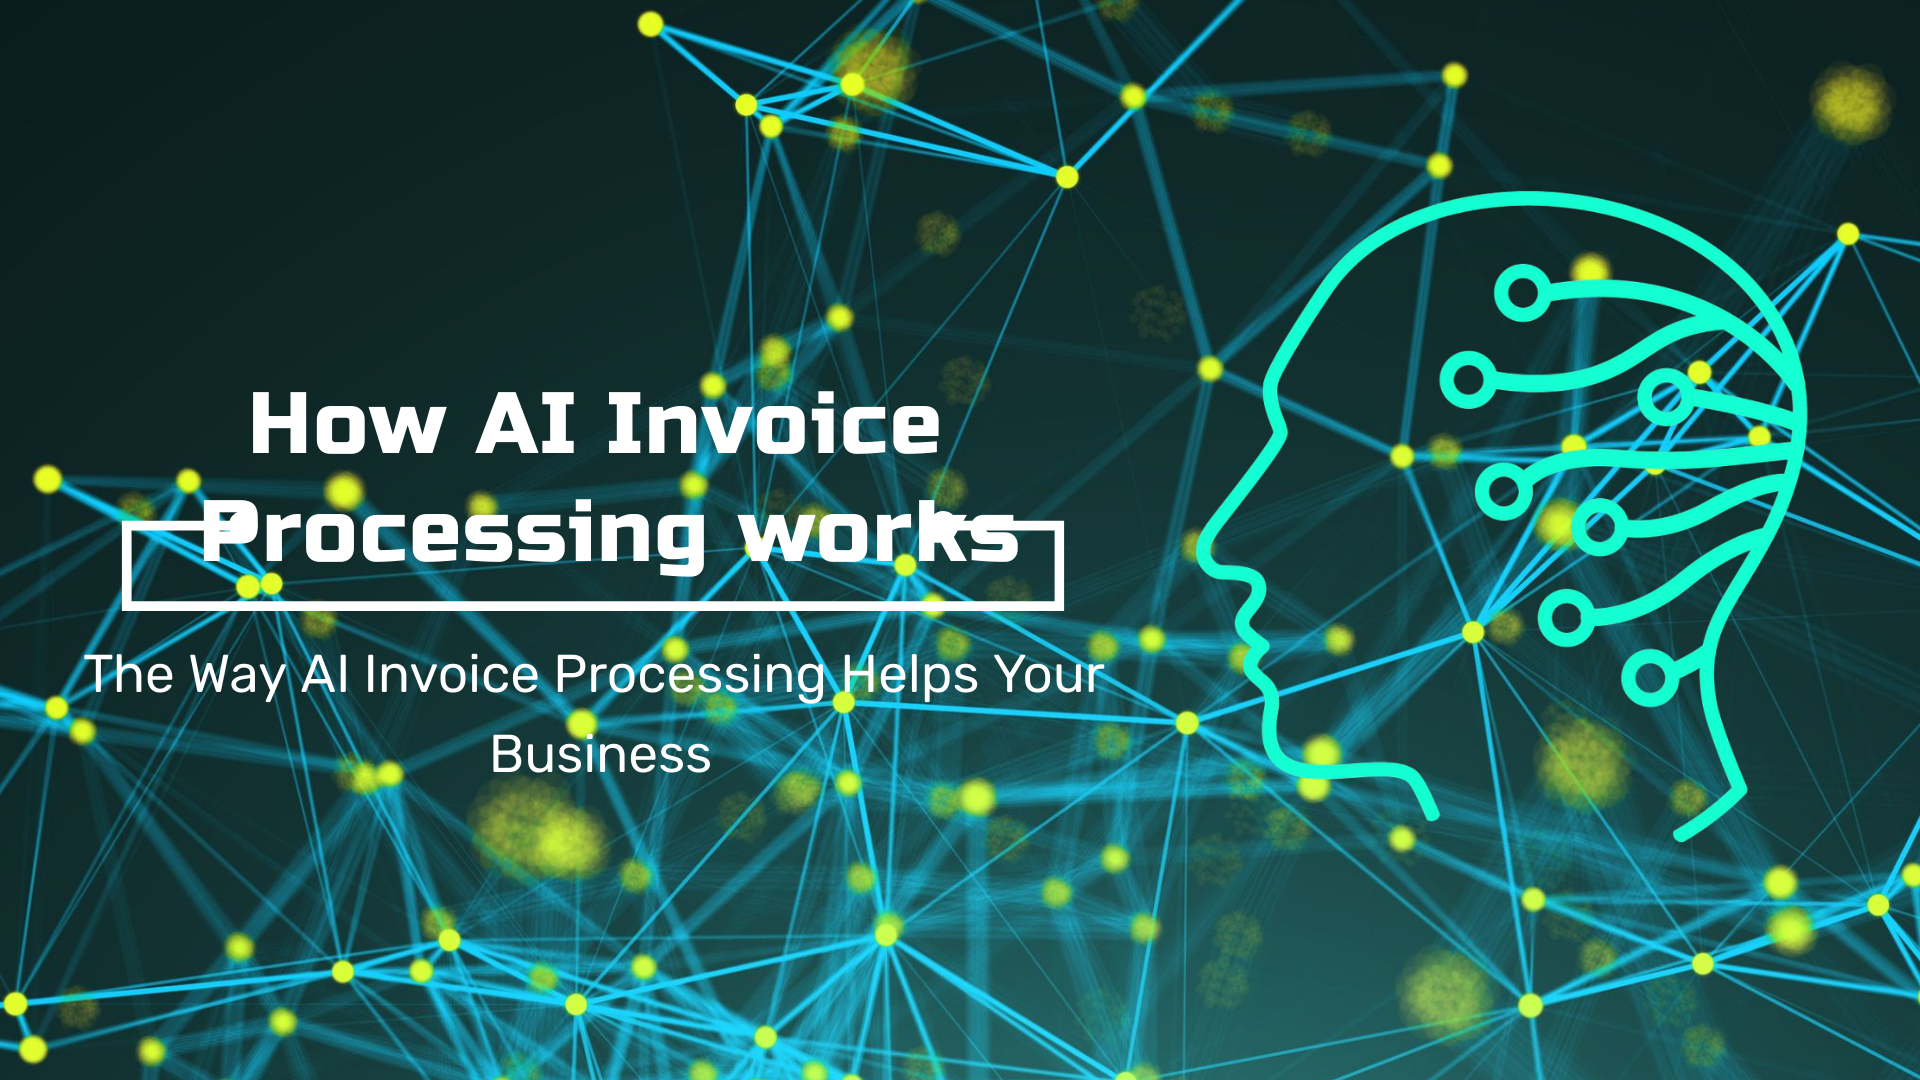 How AI Invoice Processing Works